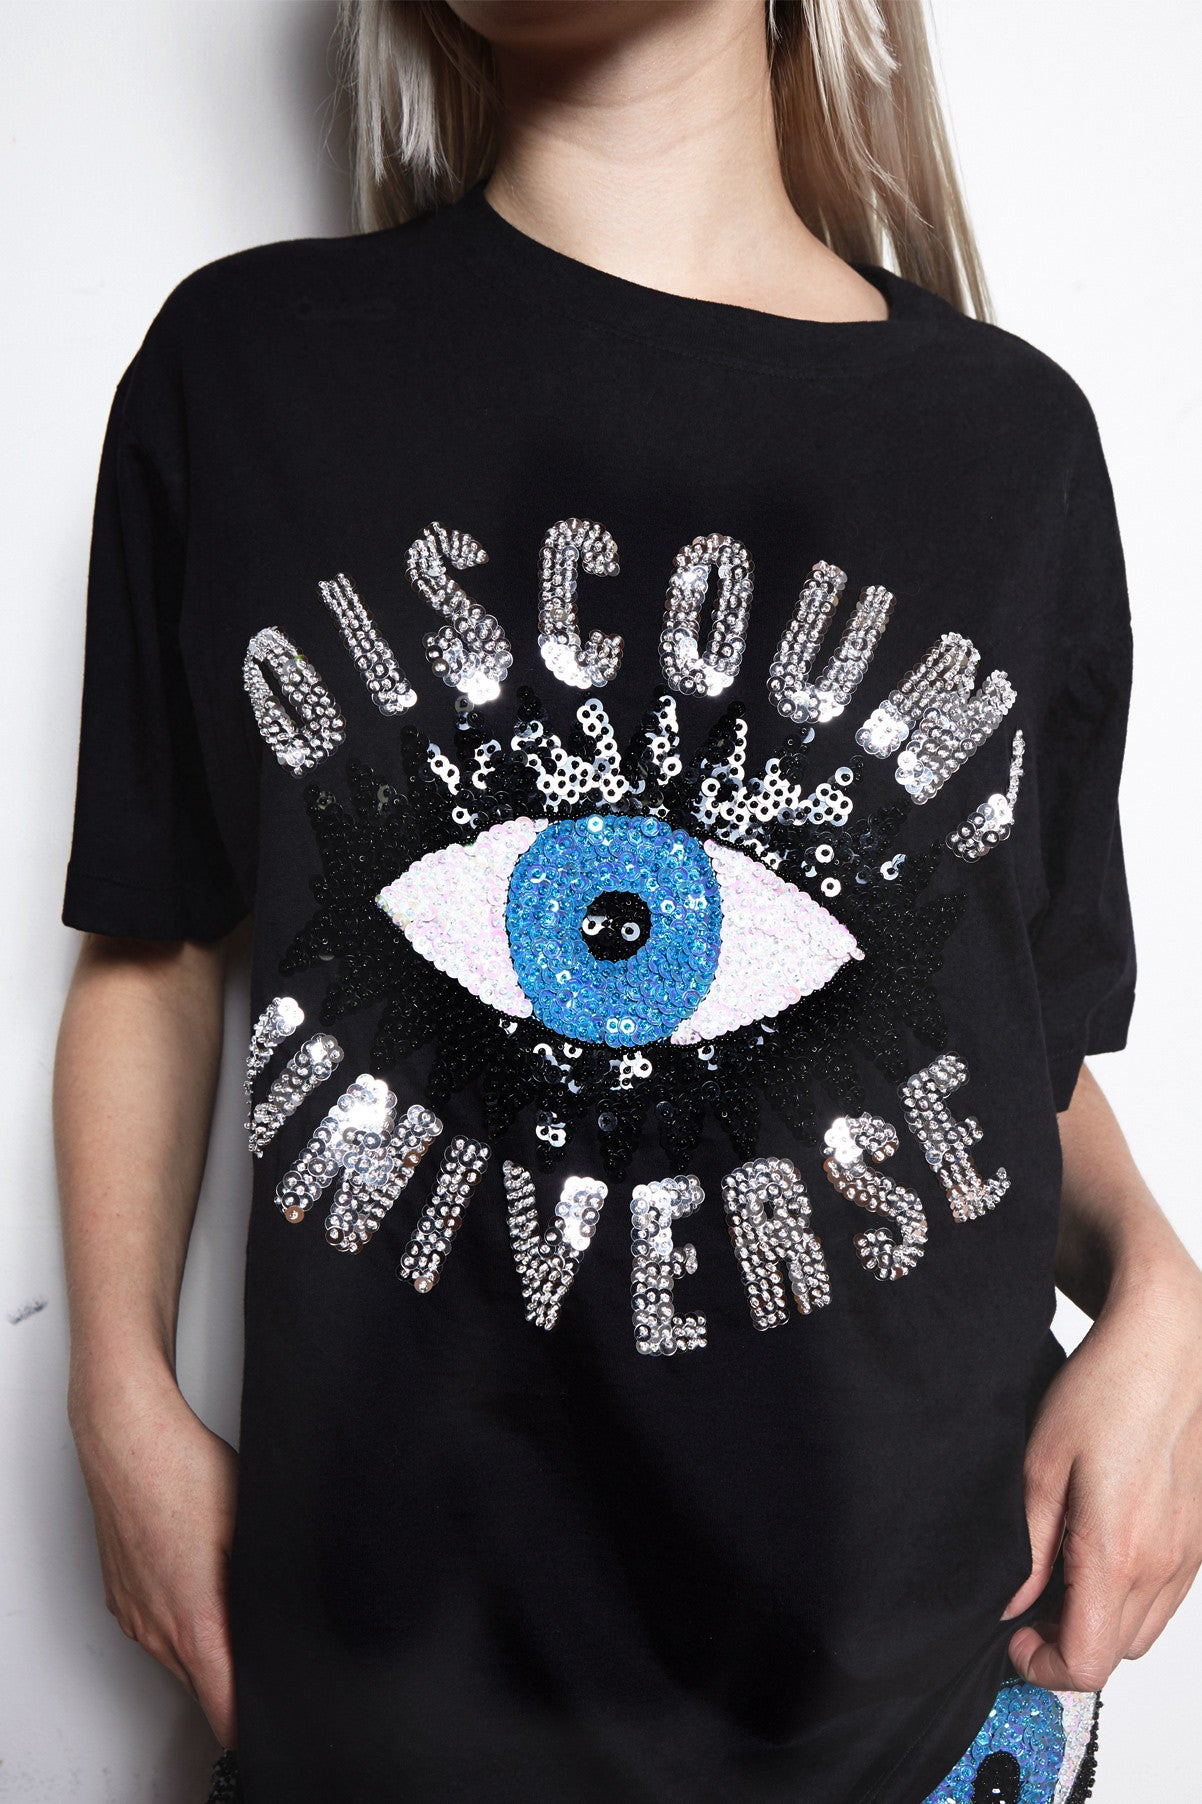 eye's on you tee, eye's on you sequinned tee, evil eye tee, evil eye sequinned tee, evil eye t-shirt, evil eye, discount universe, di$count universe, sequinned t-shirt